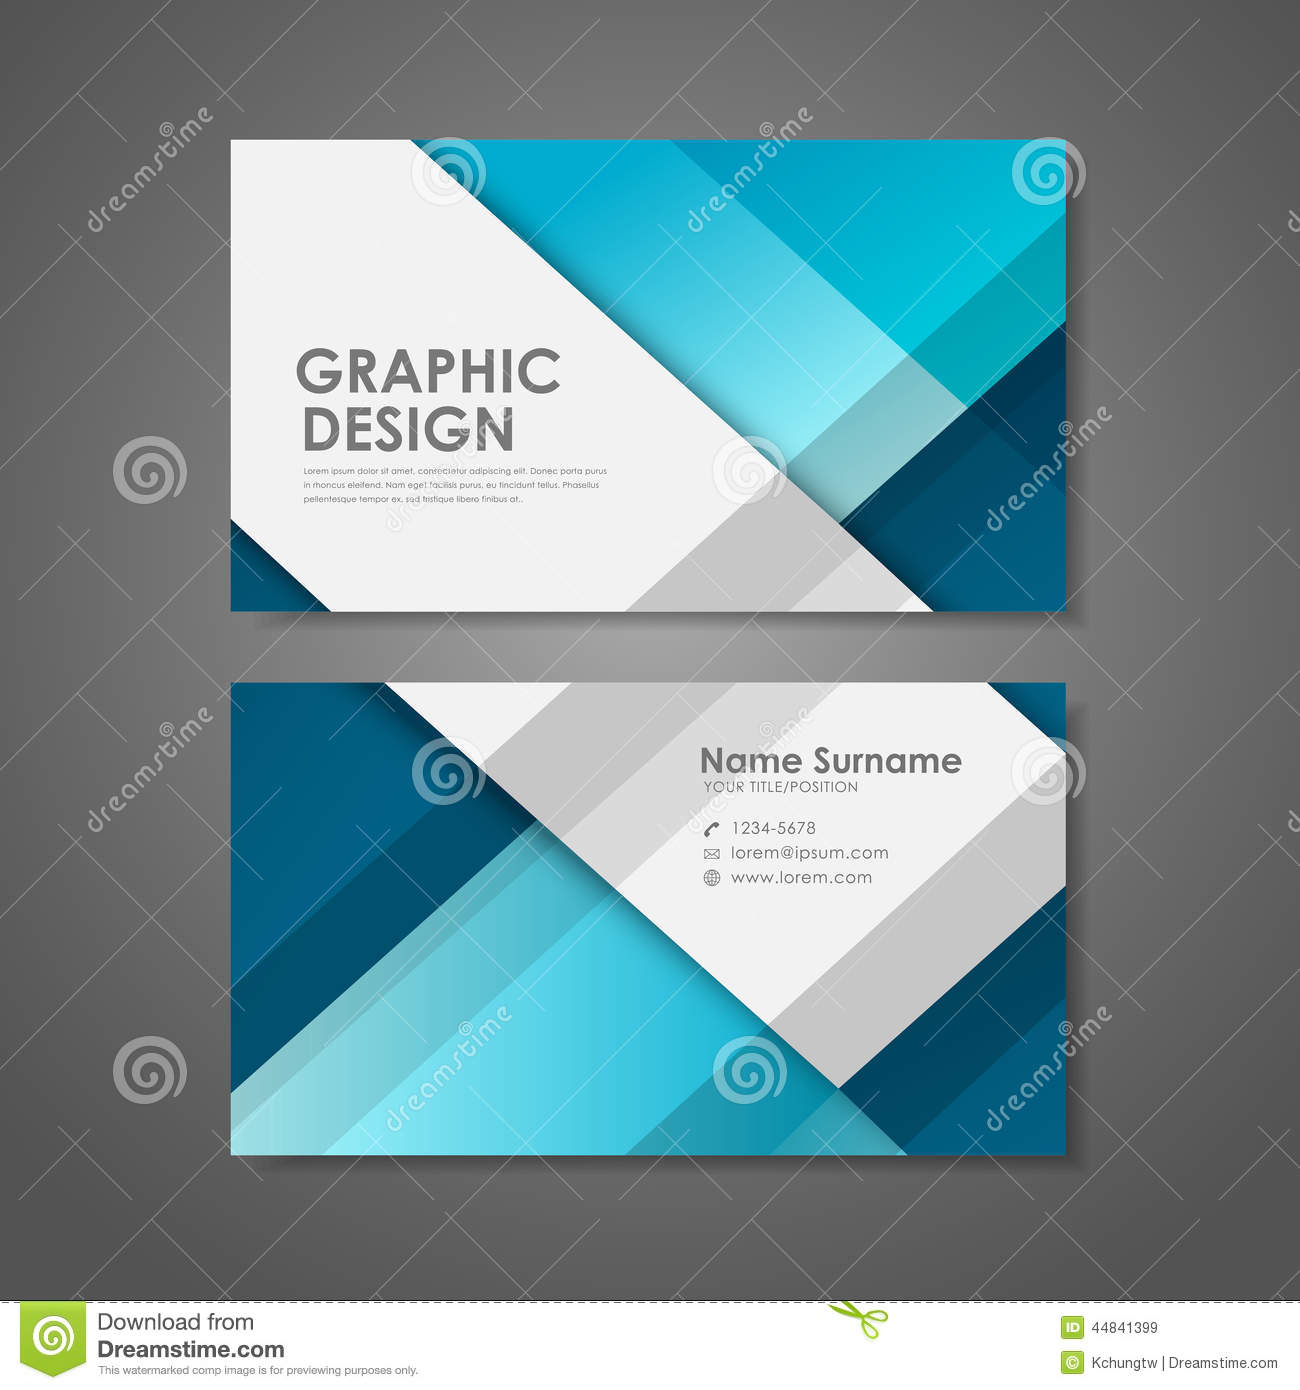 Creative business card template in blue stock vector for Blue business card template